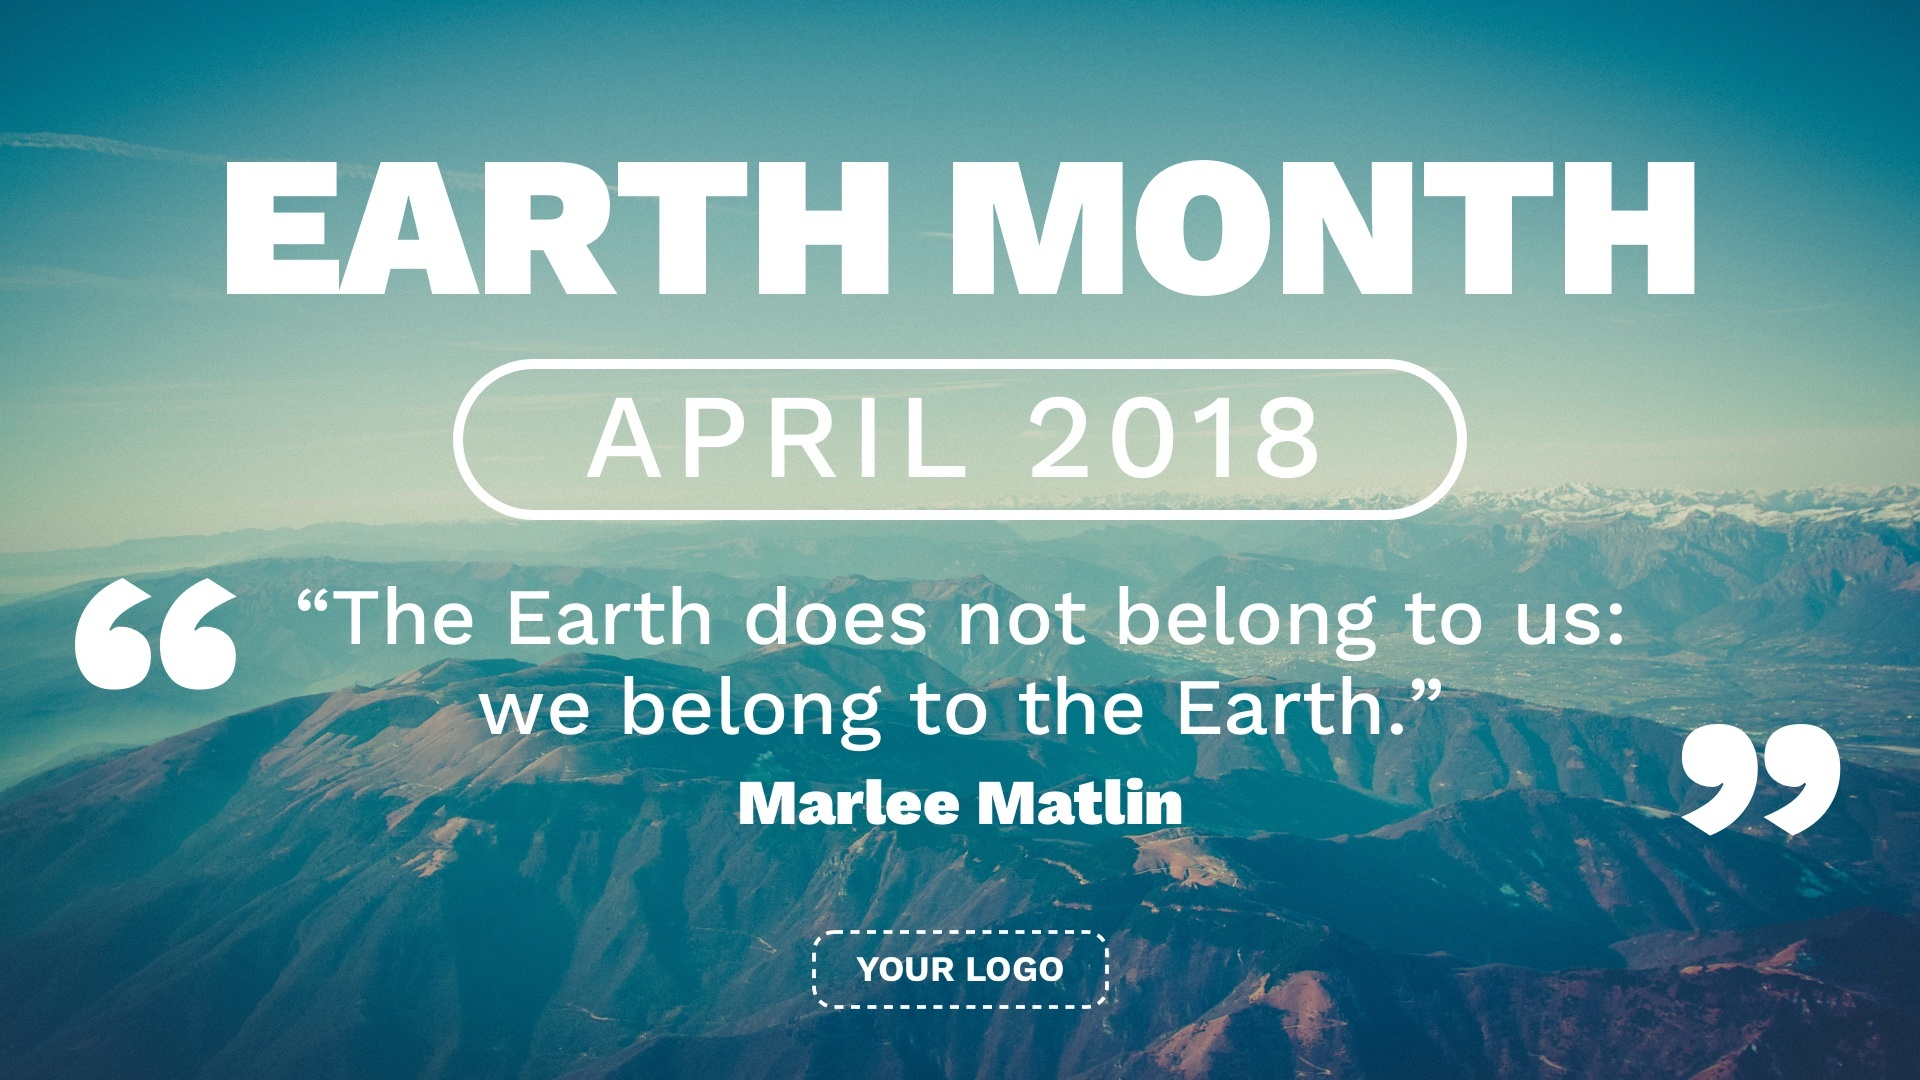 Celebrate Earth Month with this digital signage template